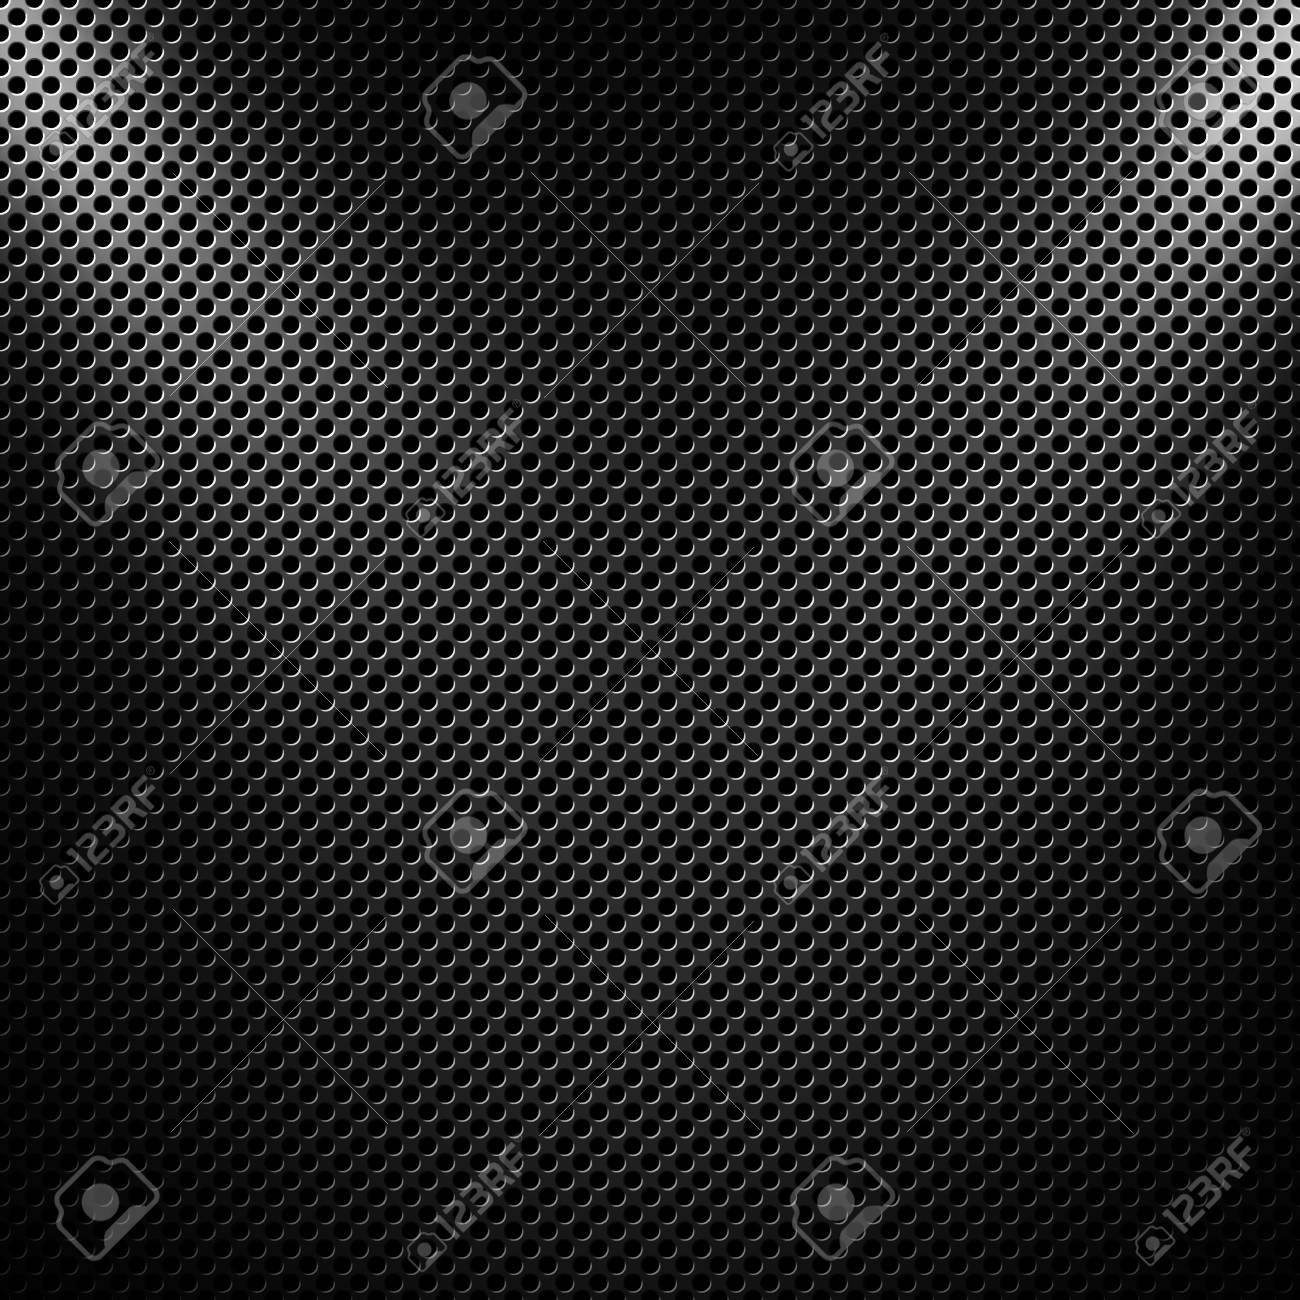 Abstract Modern Grey Perforated Metal Plate Textured Material